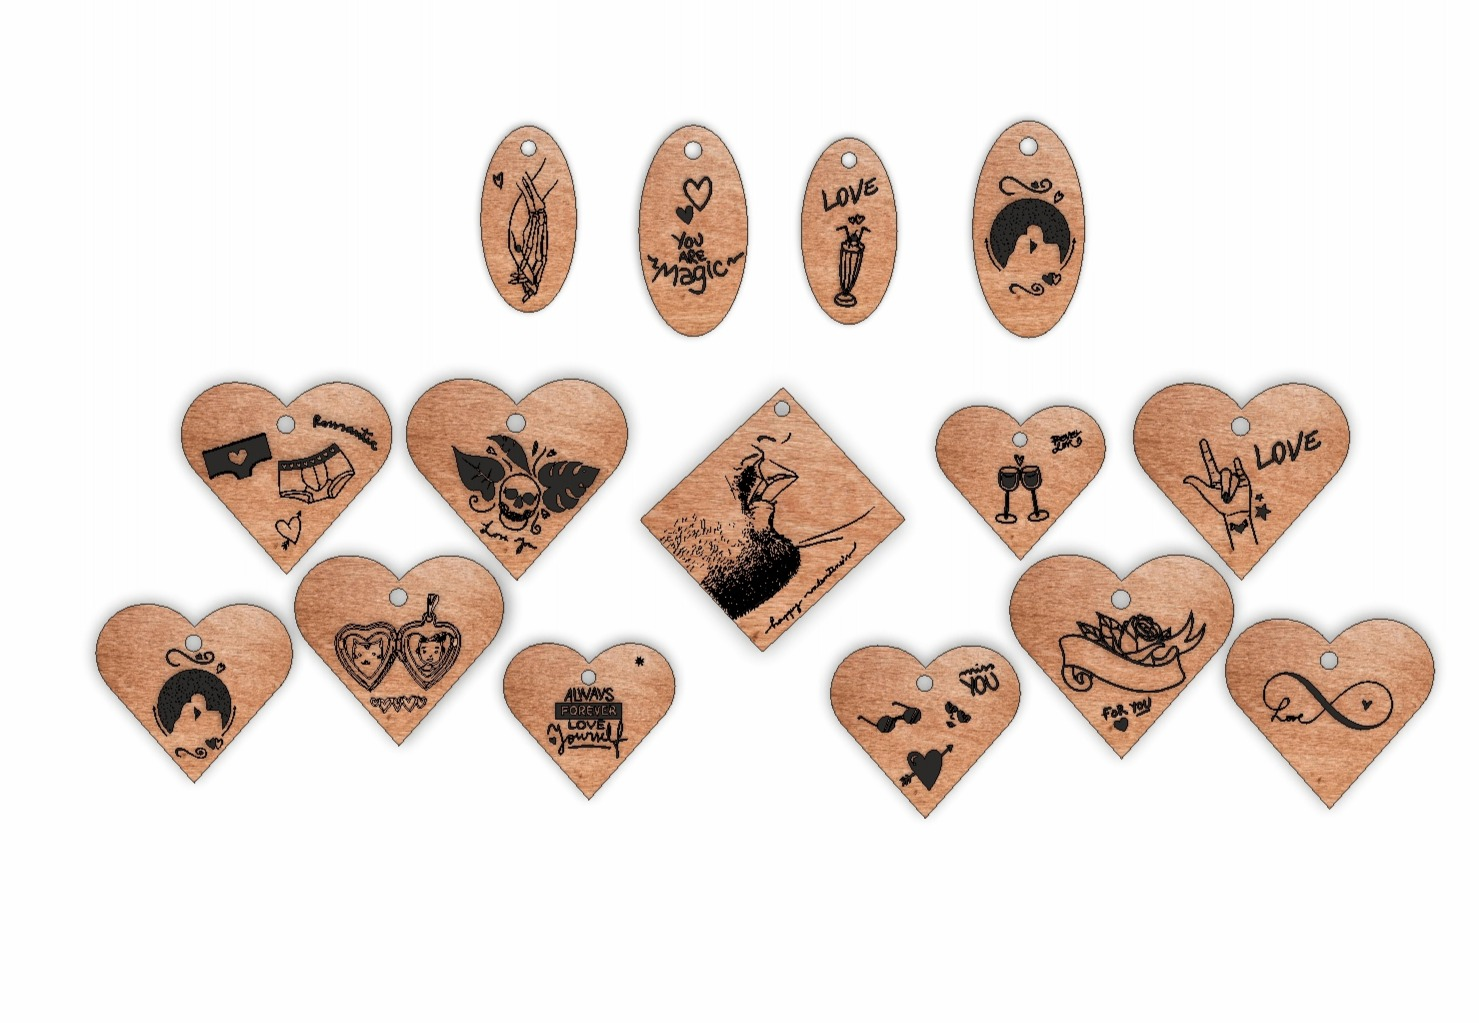 Laser Cut Engrave Wood Personalized Keychains Free CDR Vectors Art